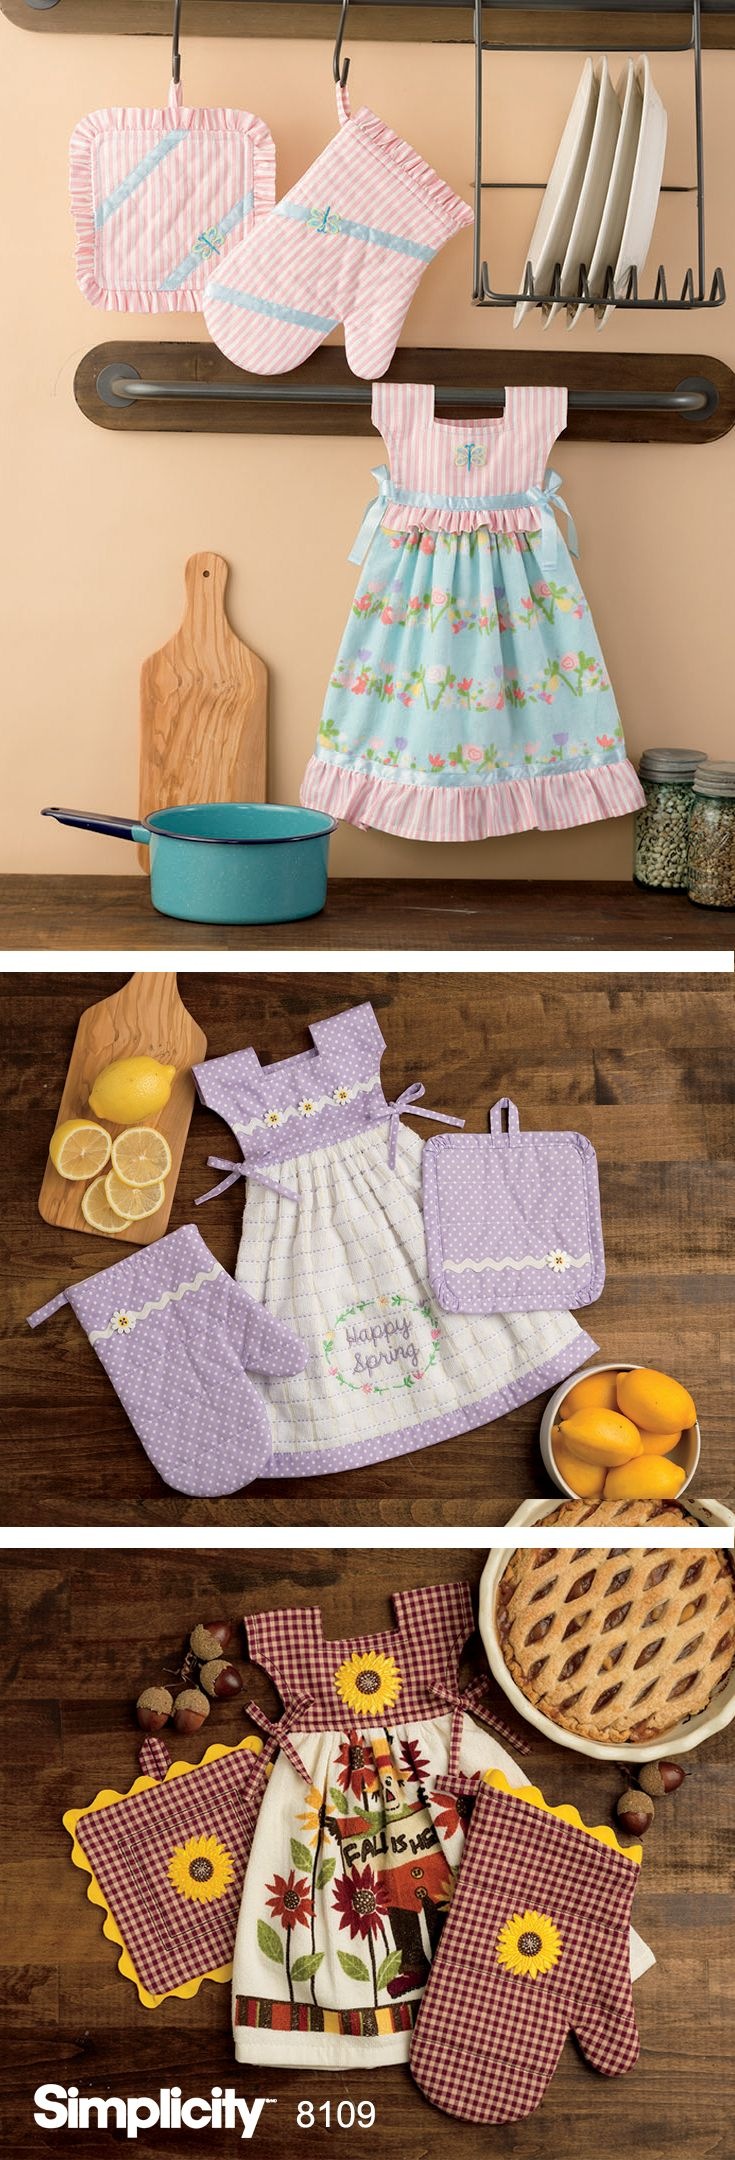 These adorable towel dresses will add some fun to your kitchen. Dresses tie over towel rack, oven door handle, or anywhere else you might need a hand towel. Miniature pot holders and oven mitts also included.